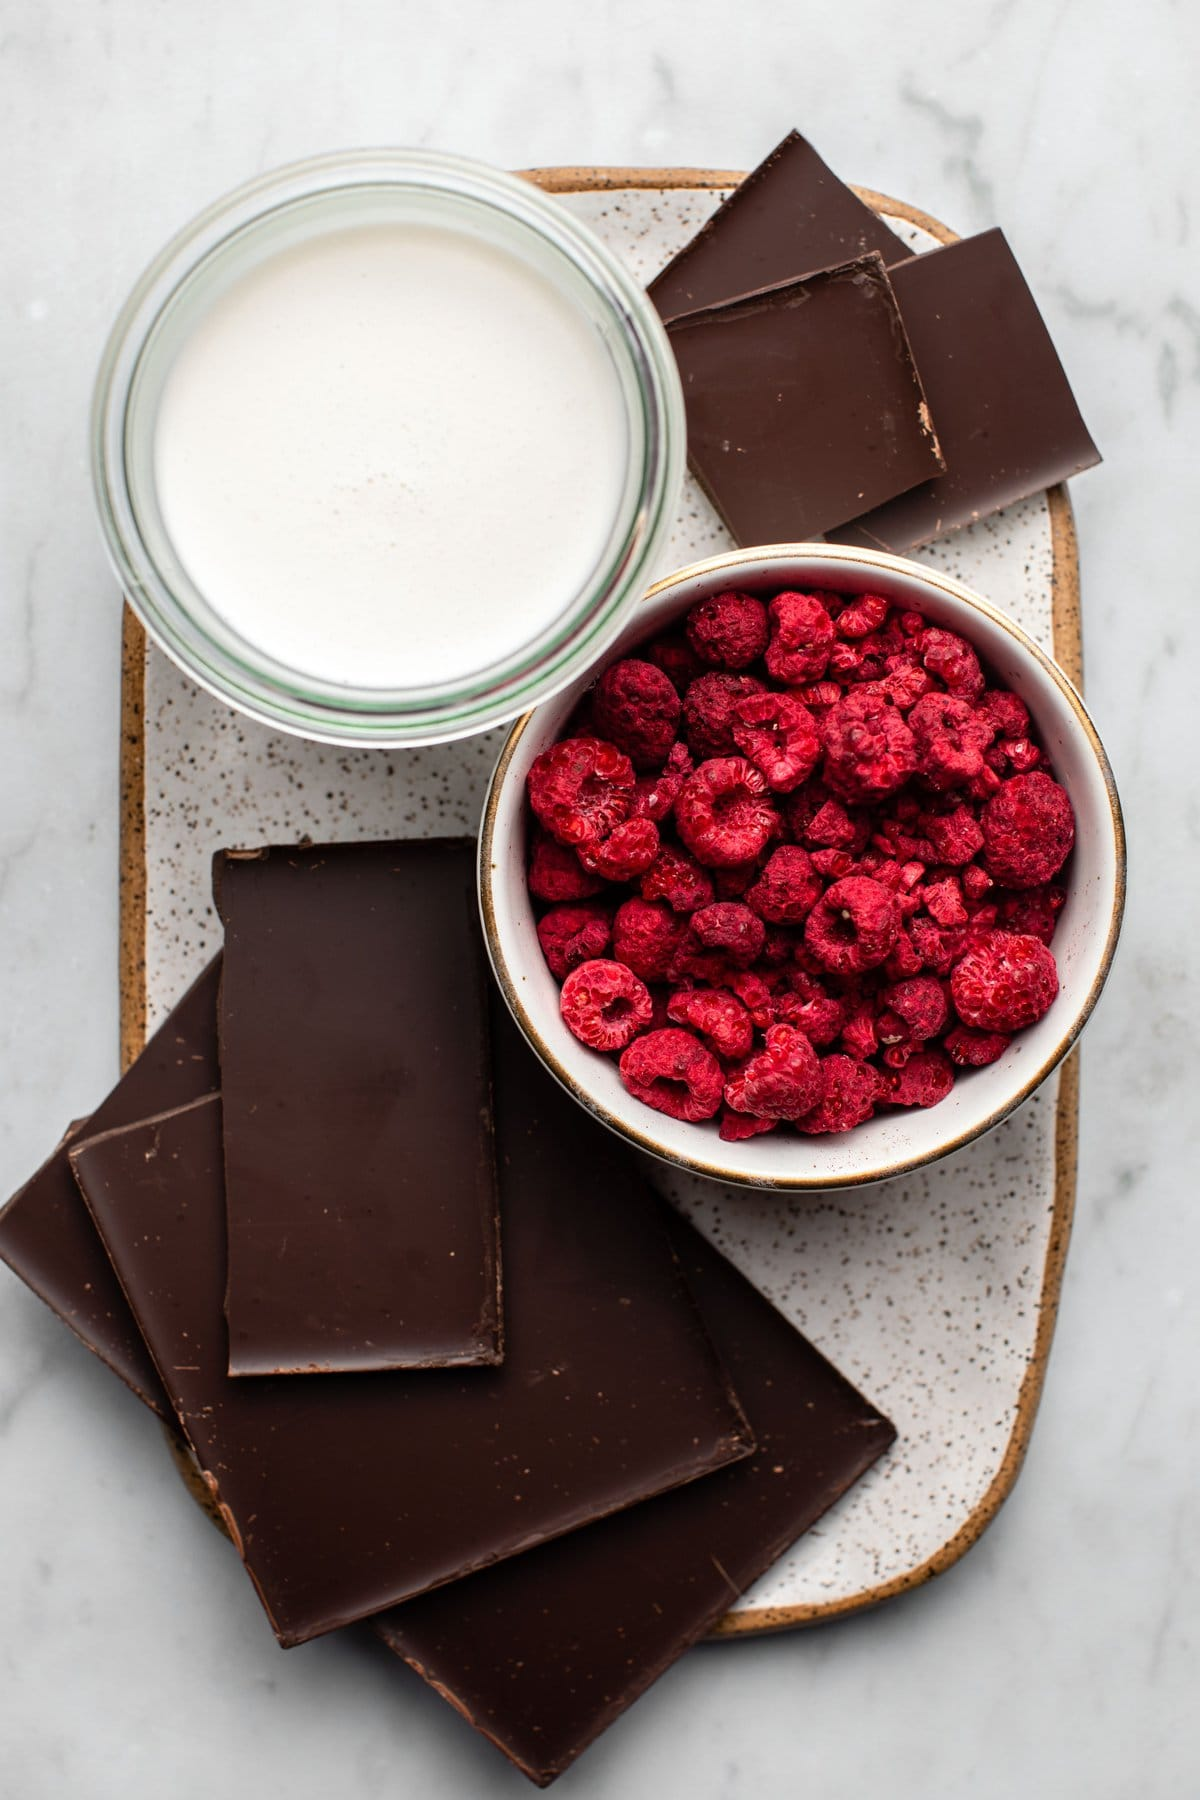 ingredients for chocolate raspberry truffles on white speckled ceramic tray